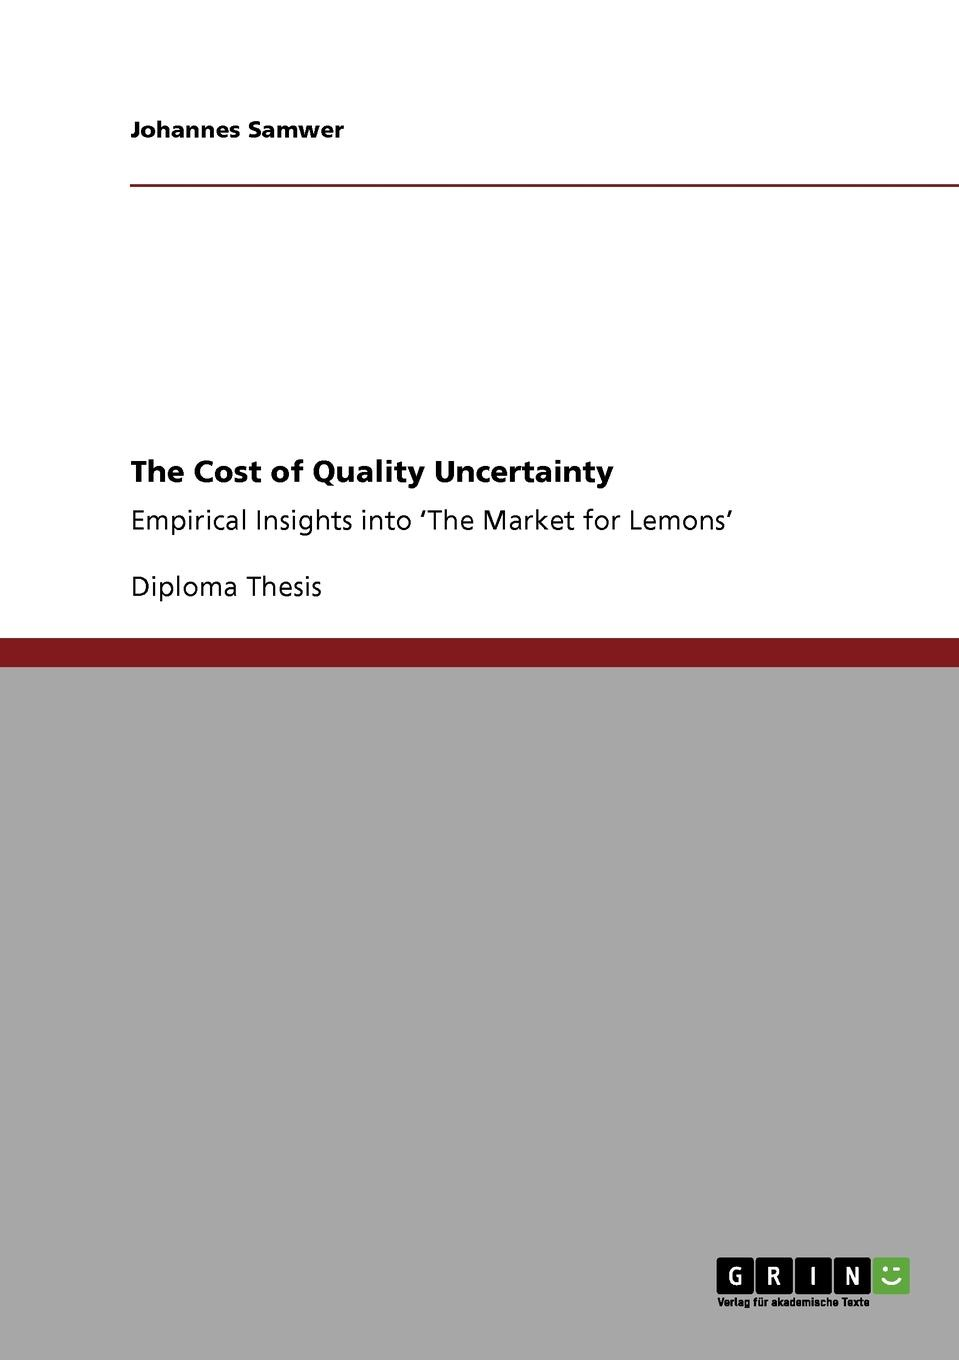 Johannes Samwer The Cost of Quality Uncertainty